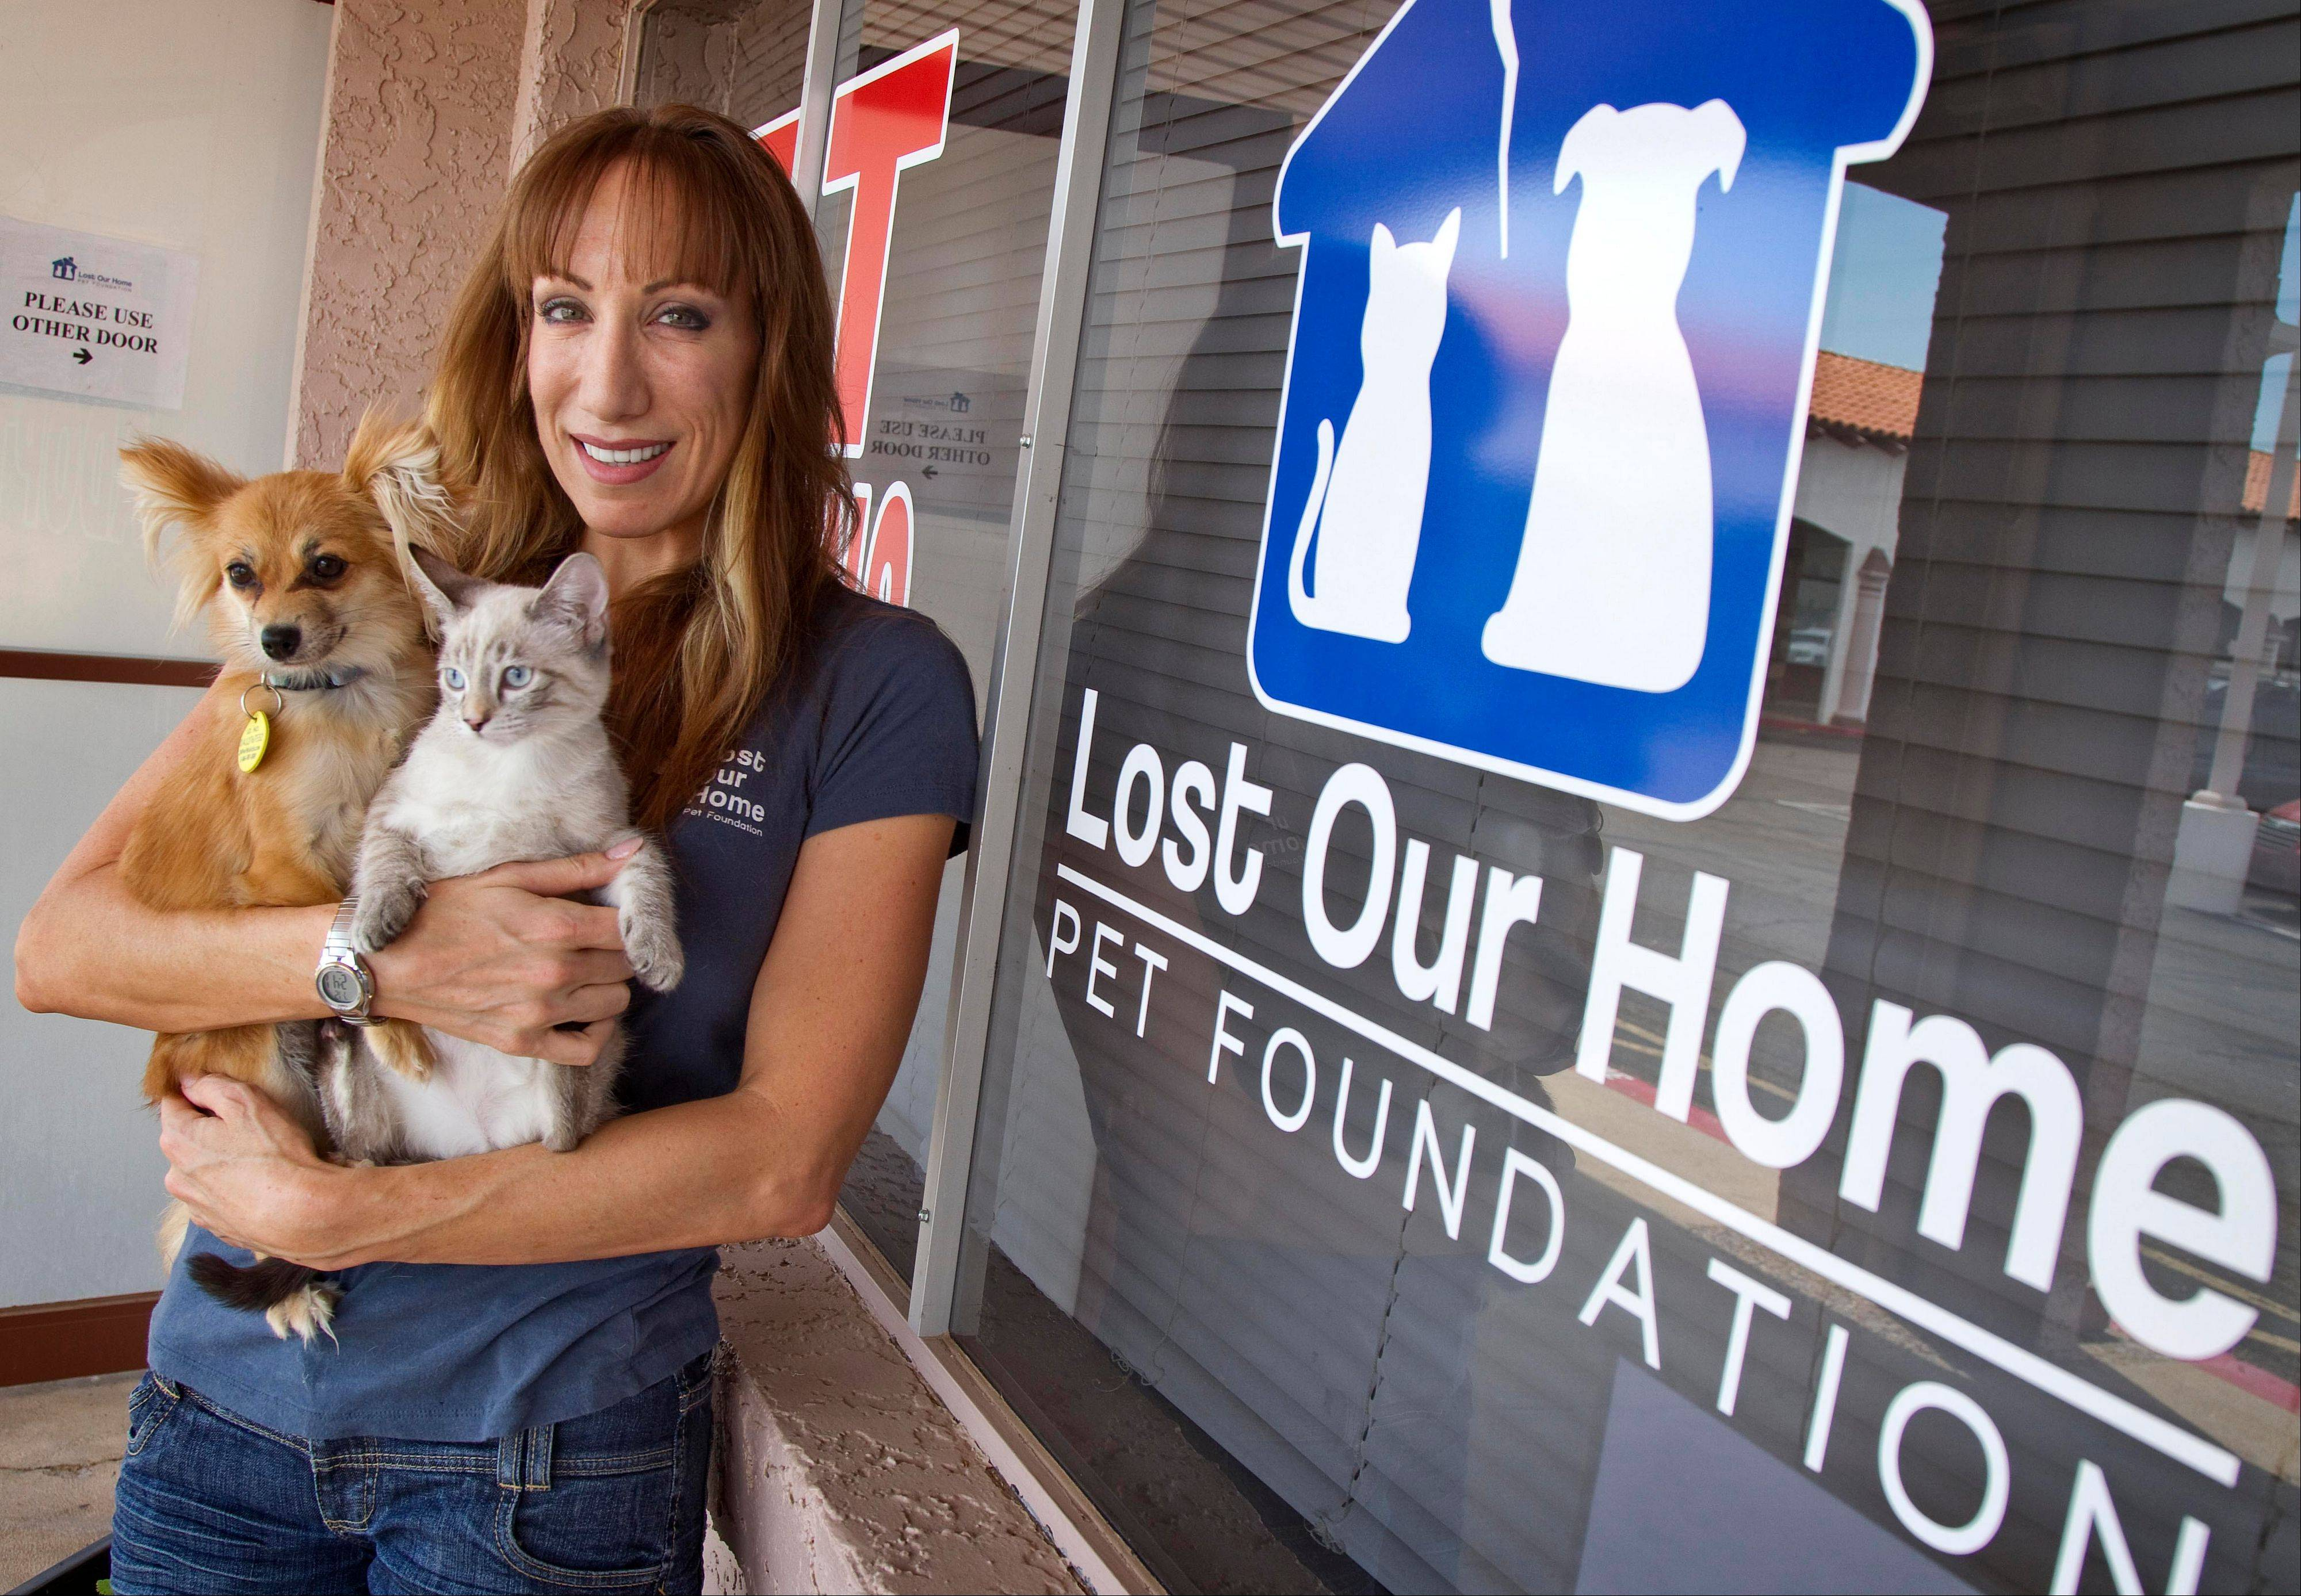 Jodi Polanski, founder and executive director of Lost Our Home Pet Foundation, stands outside her business in Phoenix. Lost Our Home helps people facing foreclosure place their pets with other families or in foster environments until their owners can get them back. Lost Our Home Pet Foundation rescue and food bank relies primarily on fosters although it did open a small shelter in April. It has 35 to 40 animals in the shelter and 220 in foster homes and has placed over 2,000 animals in four years.